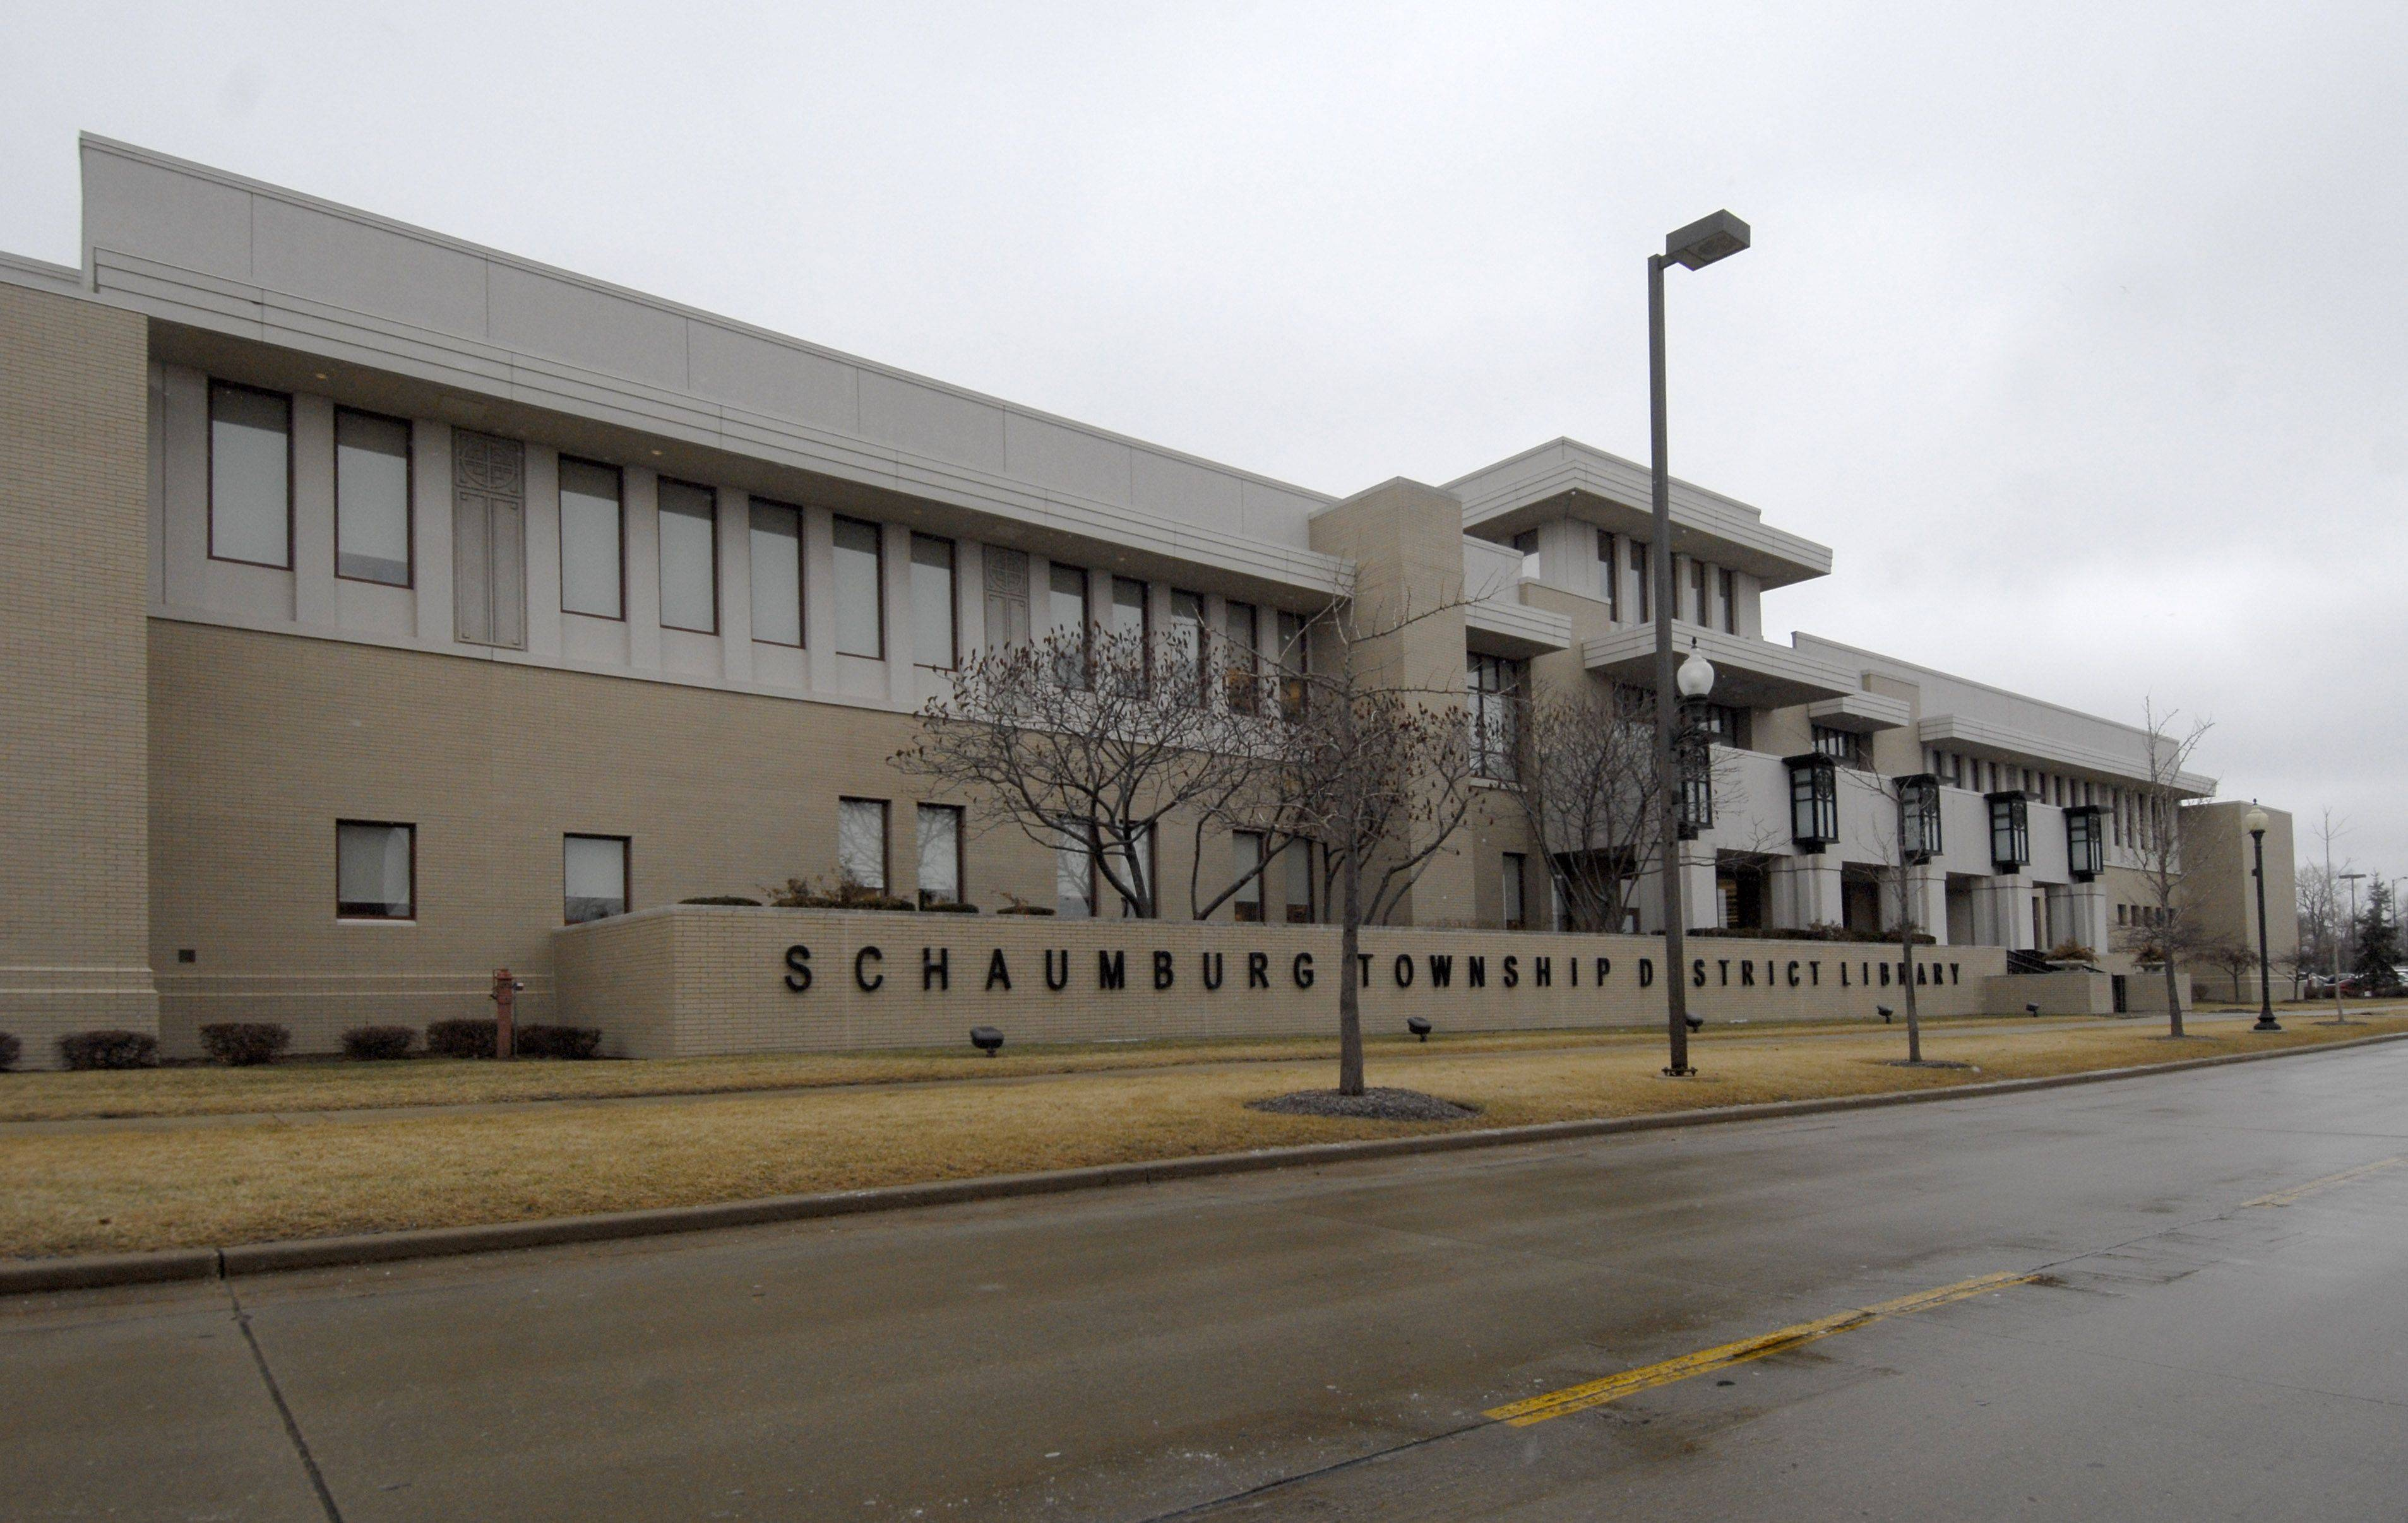 The Schaumburg Township District Library, located at Schaumburg and Roselle Road.